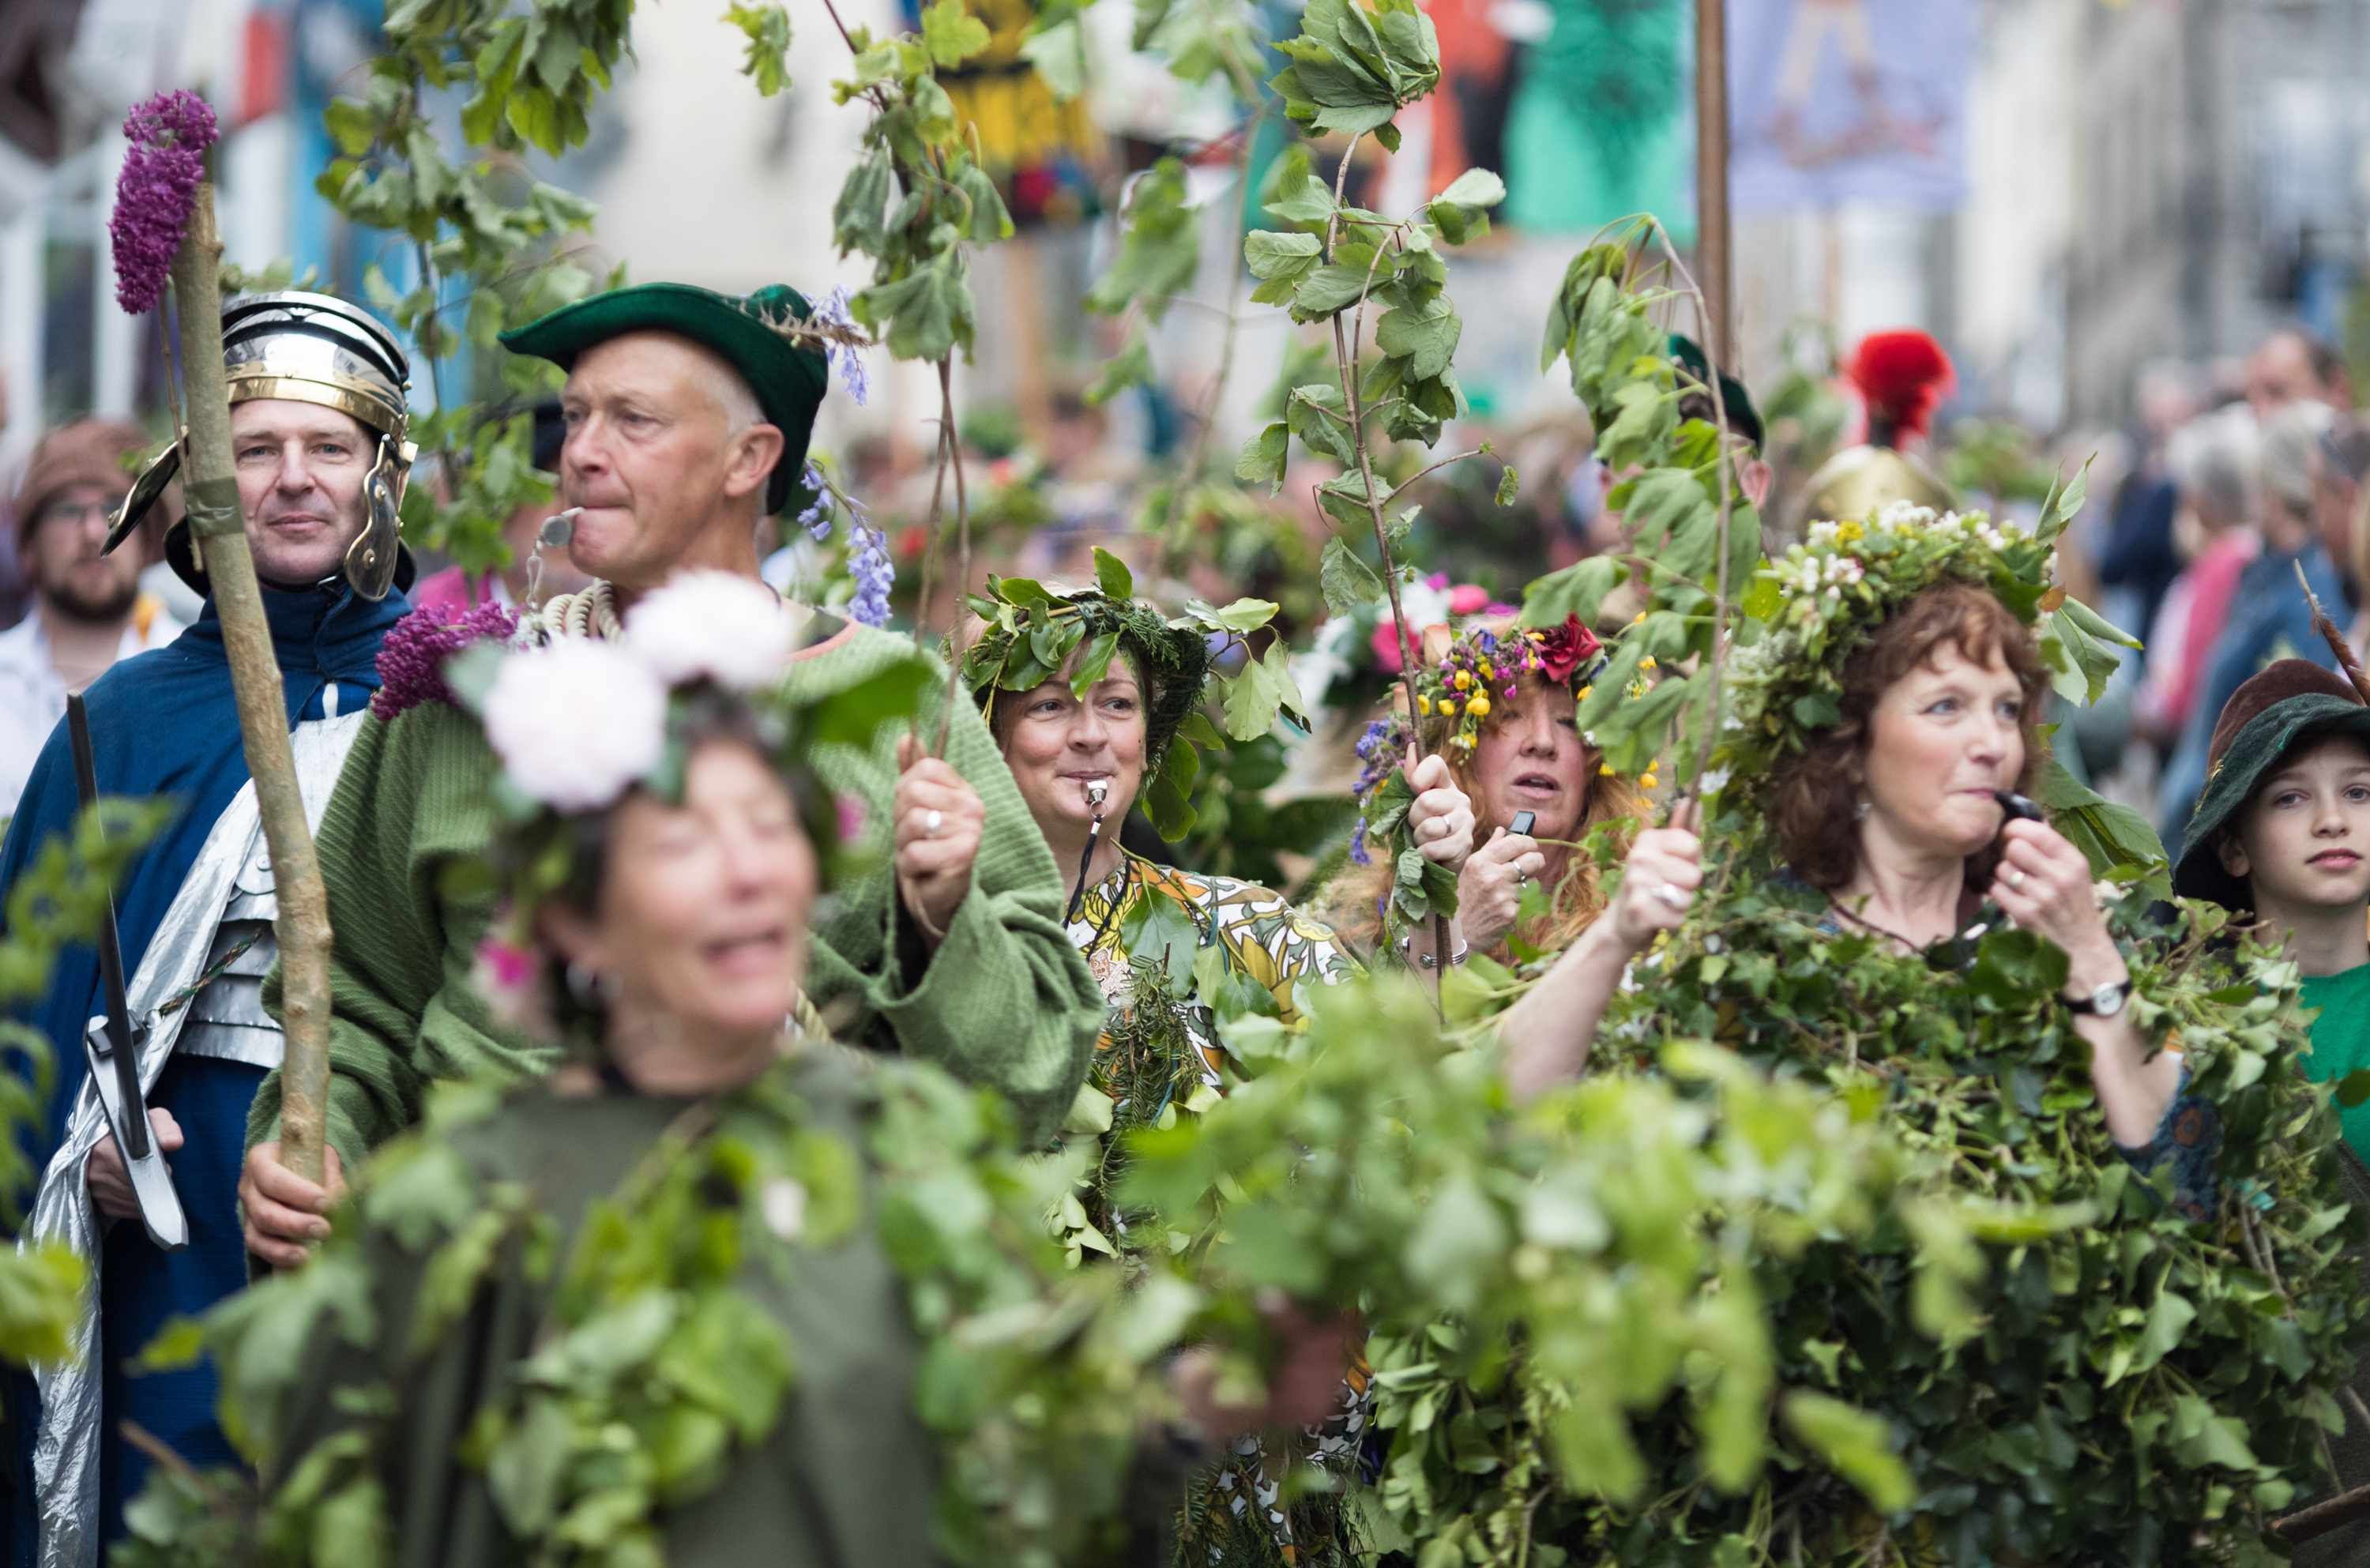 Performers take part in the Hal-an-Tow dance as they celebrate Helston Flora Day